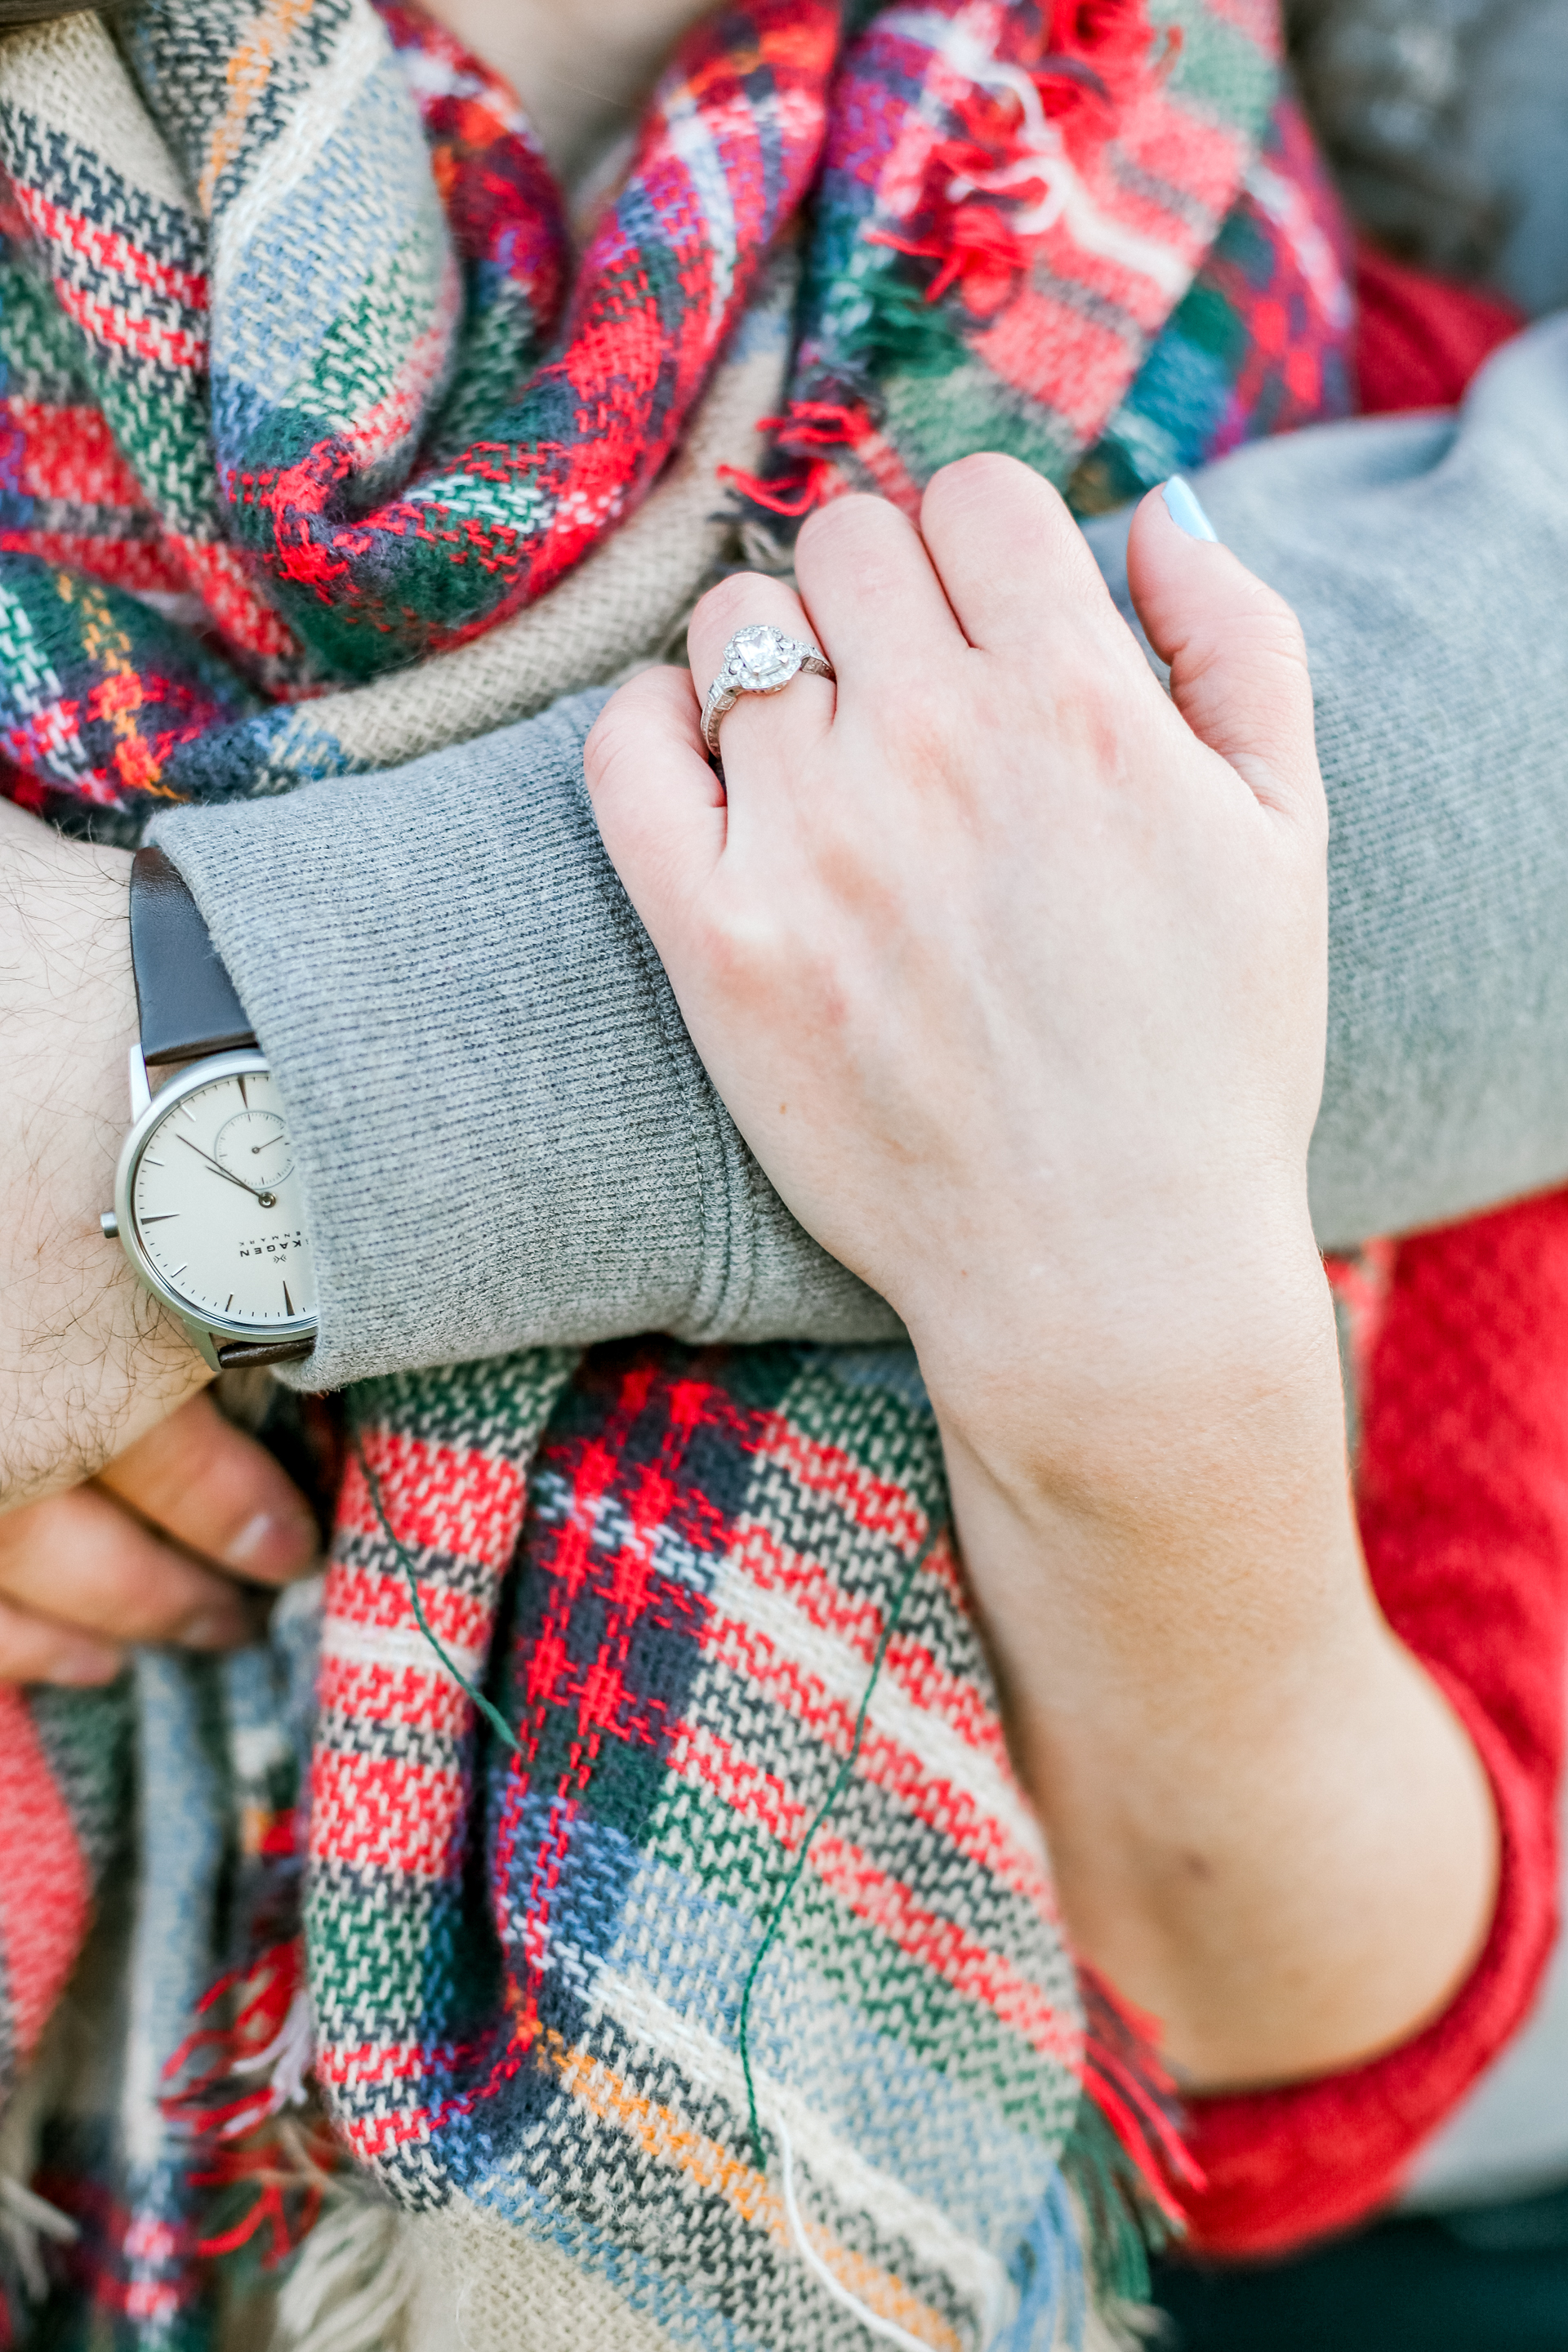 Bucks county Peace Valley Park Doylestown Lehigh Valley fall windy engagement session wedding and lifestyle photographer Lytle Photo Co (81 of 109).jpg